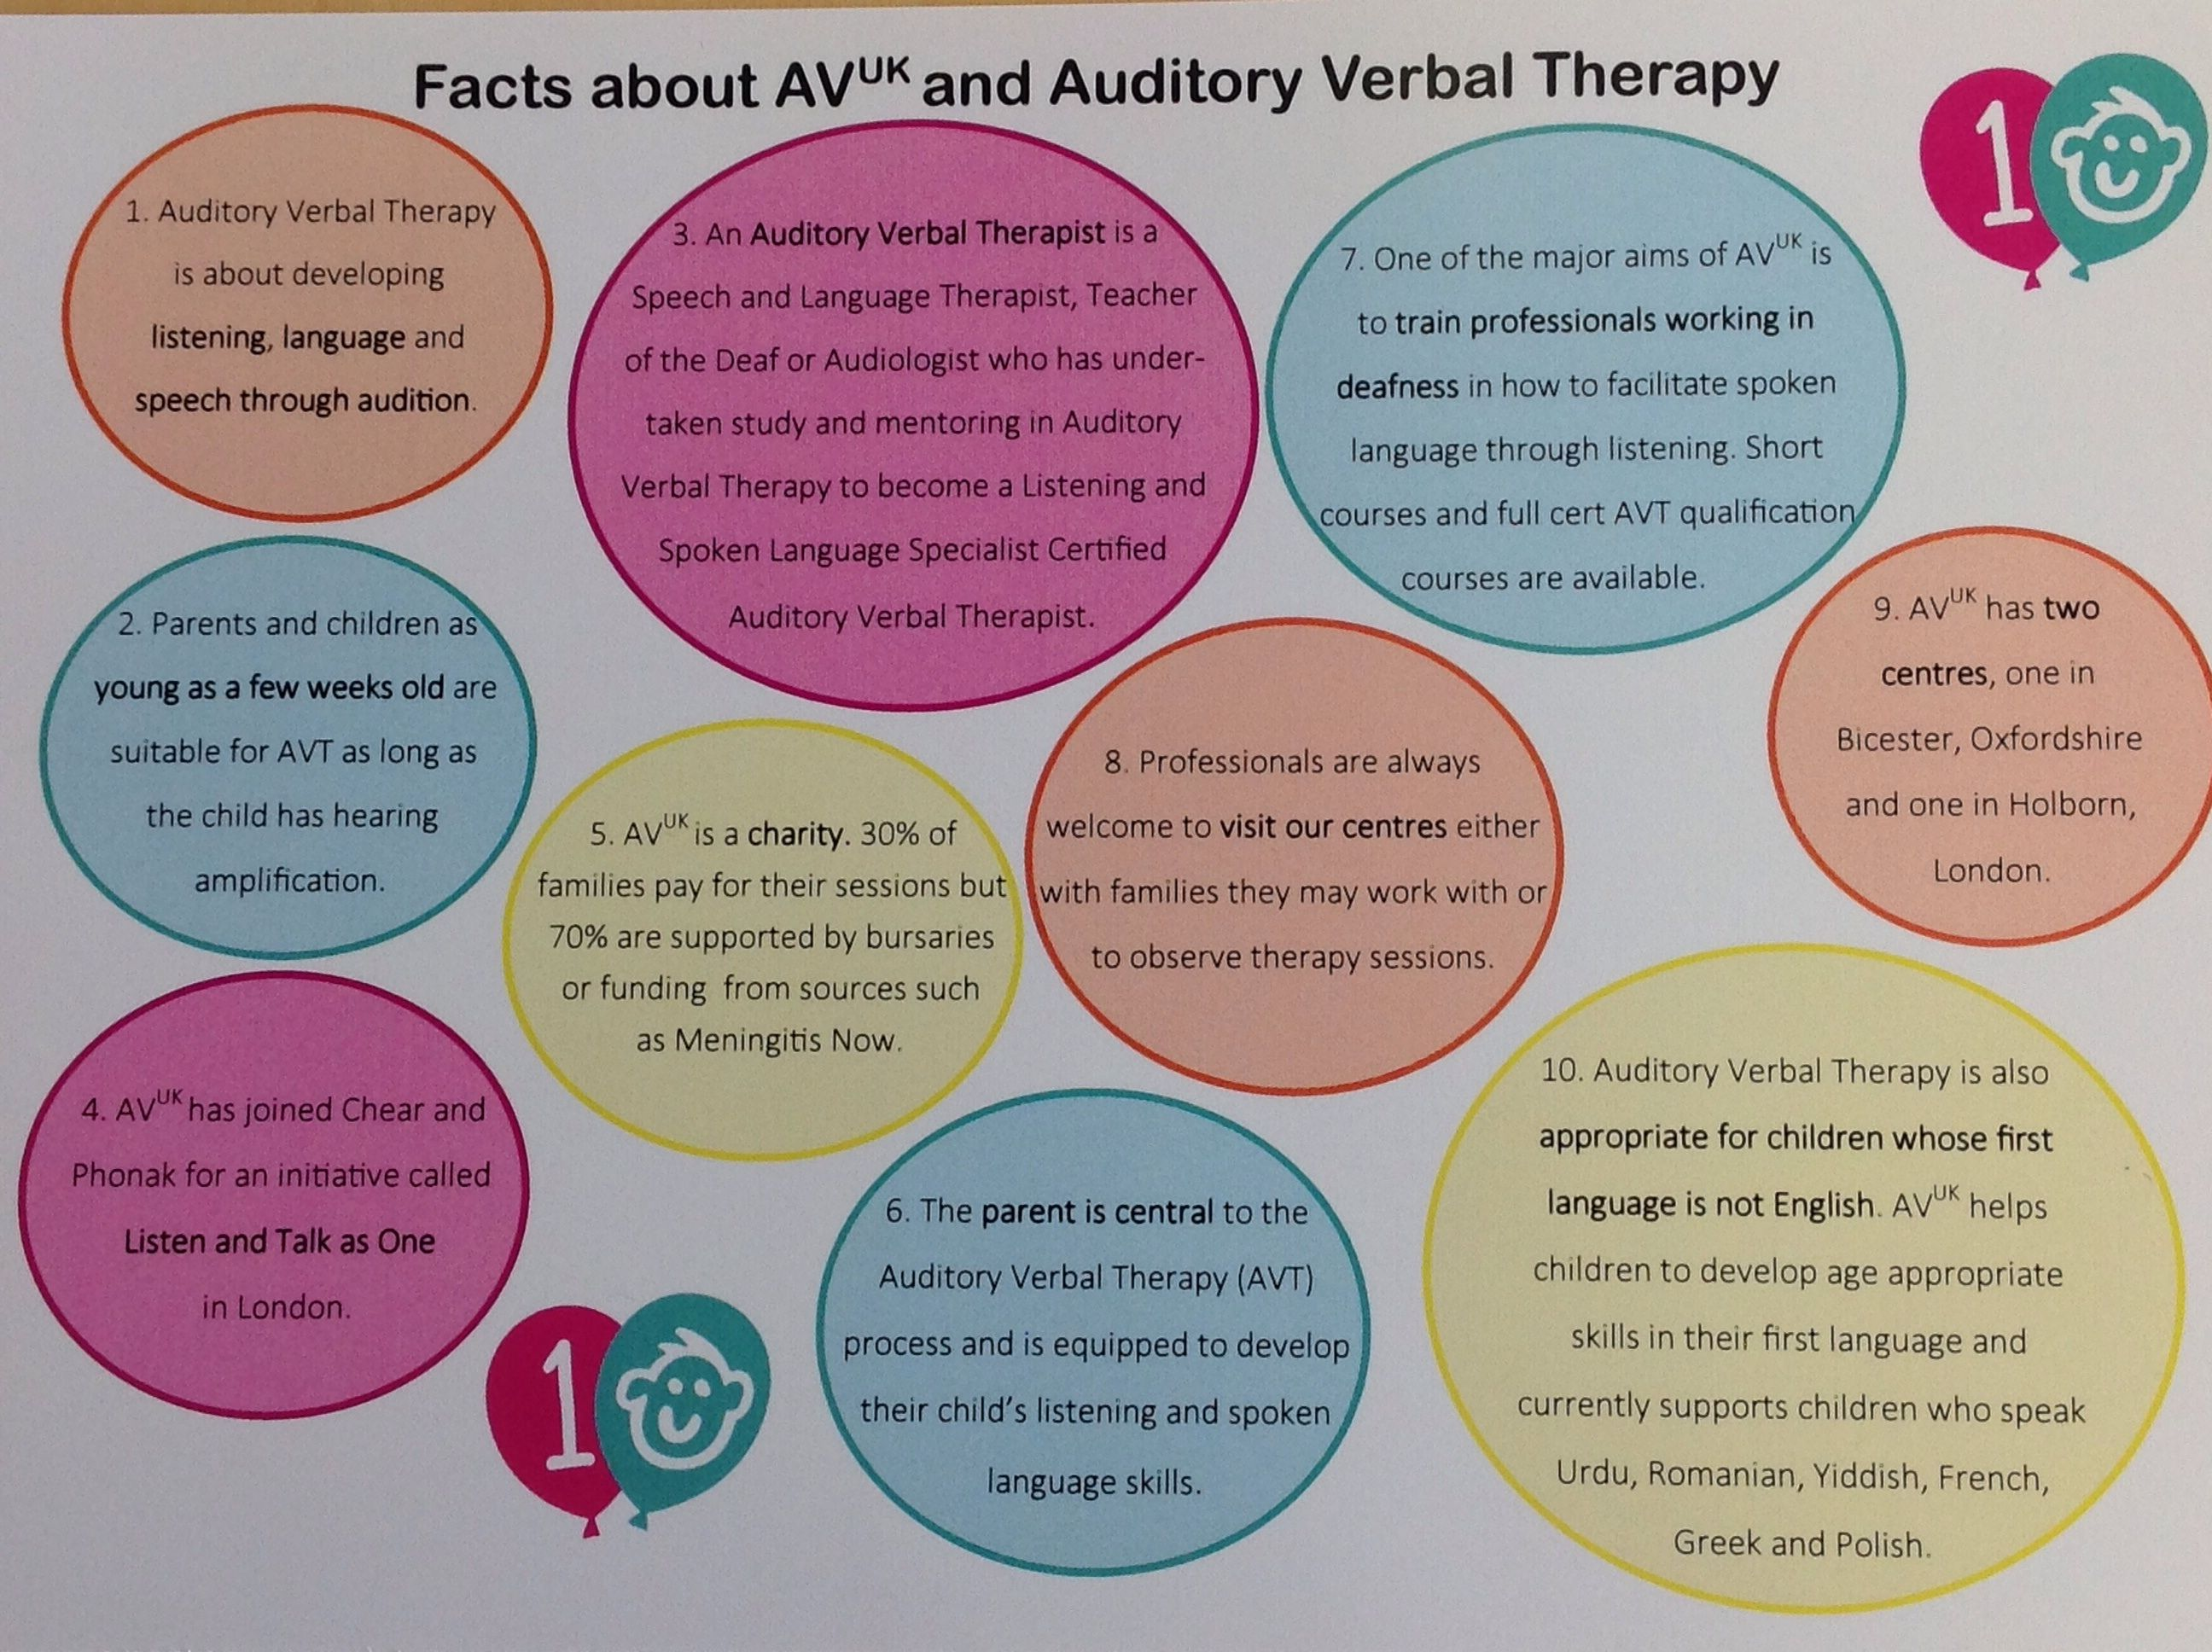 Facts About Avuk And Auditory Verbal Therapy